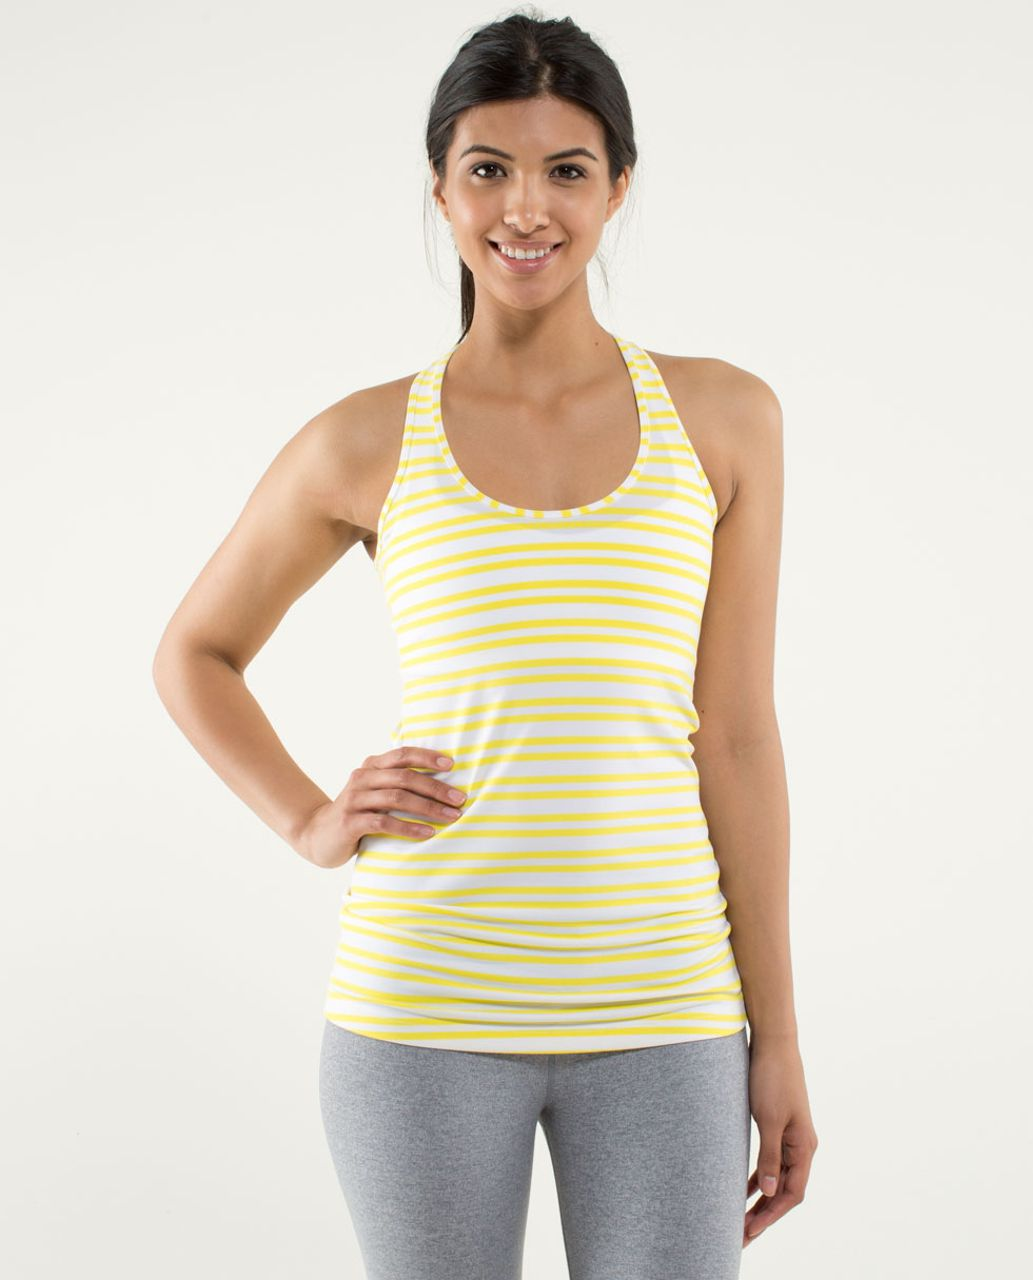 Lululemon Cool Racerback - Twin Stripe Sizzle